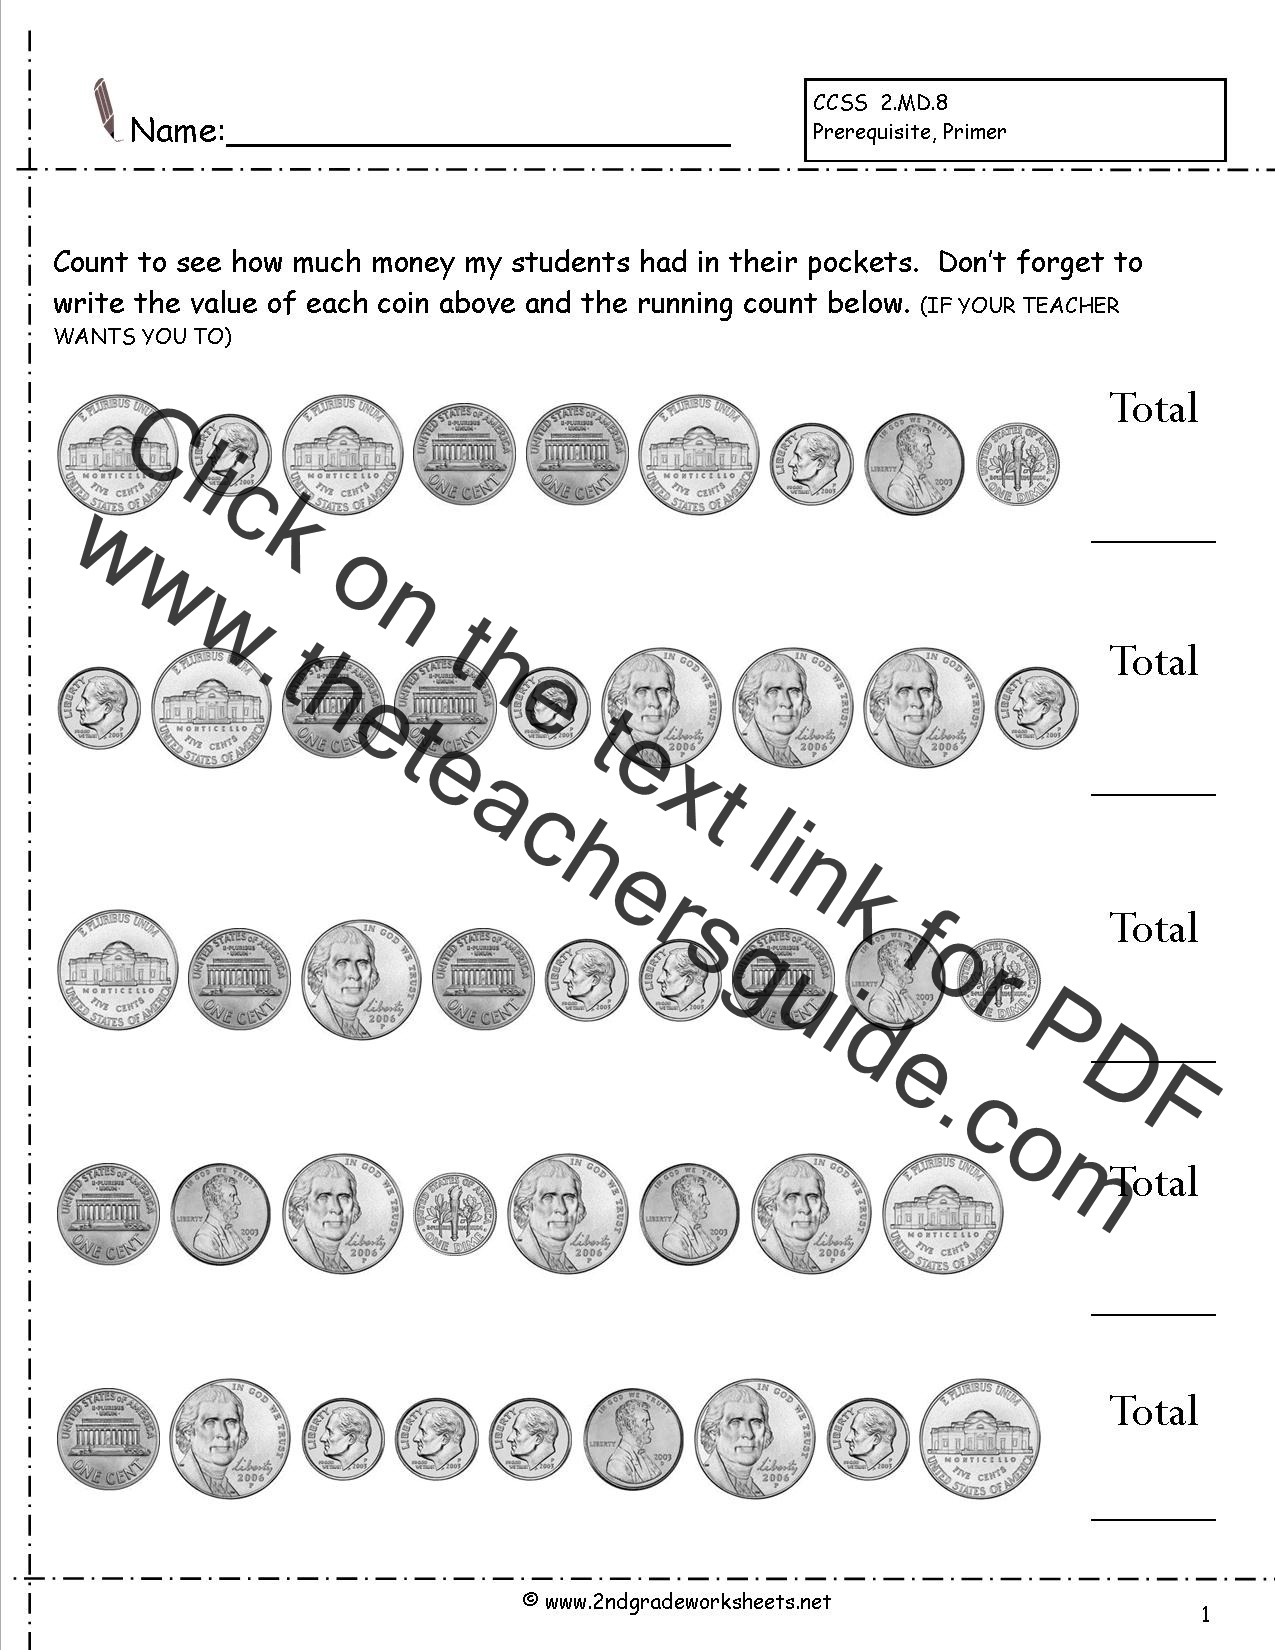 Counting Coins and Money Worksheets and Printouts – Common Core 2nd Grade Math Worksheets